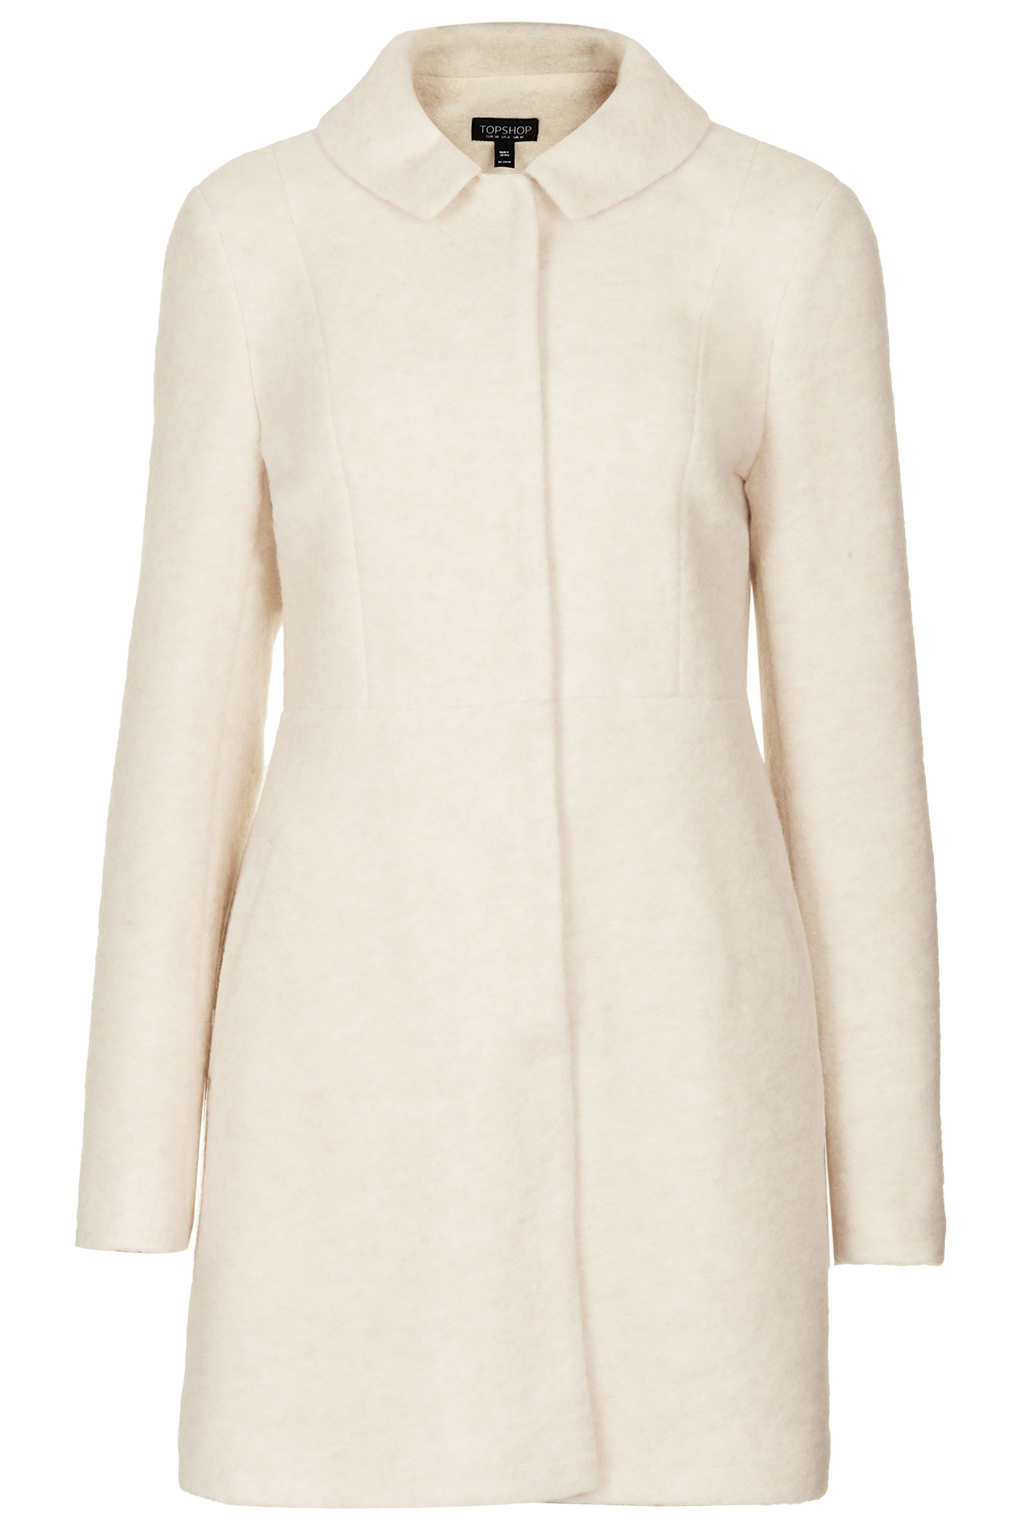 Topshop Boiled Wool Skirted Coat In Natural Lyst